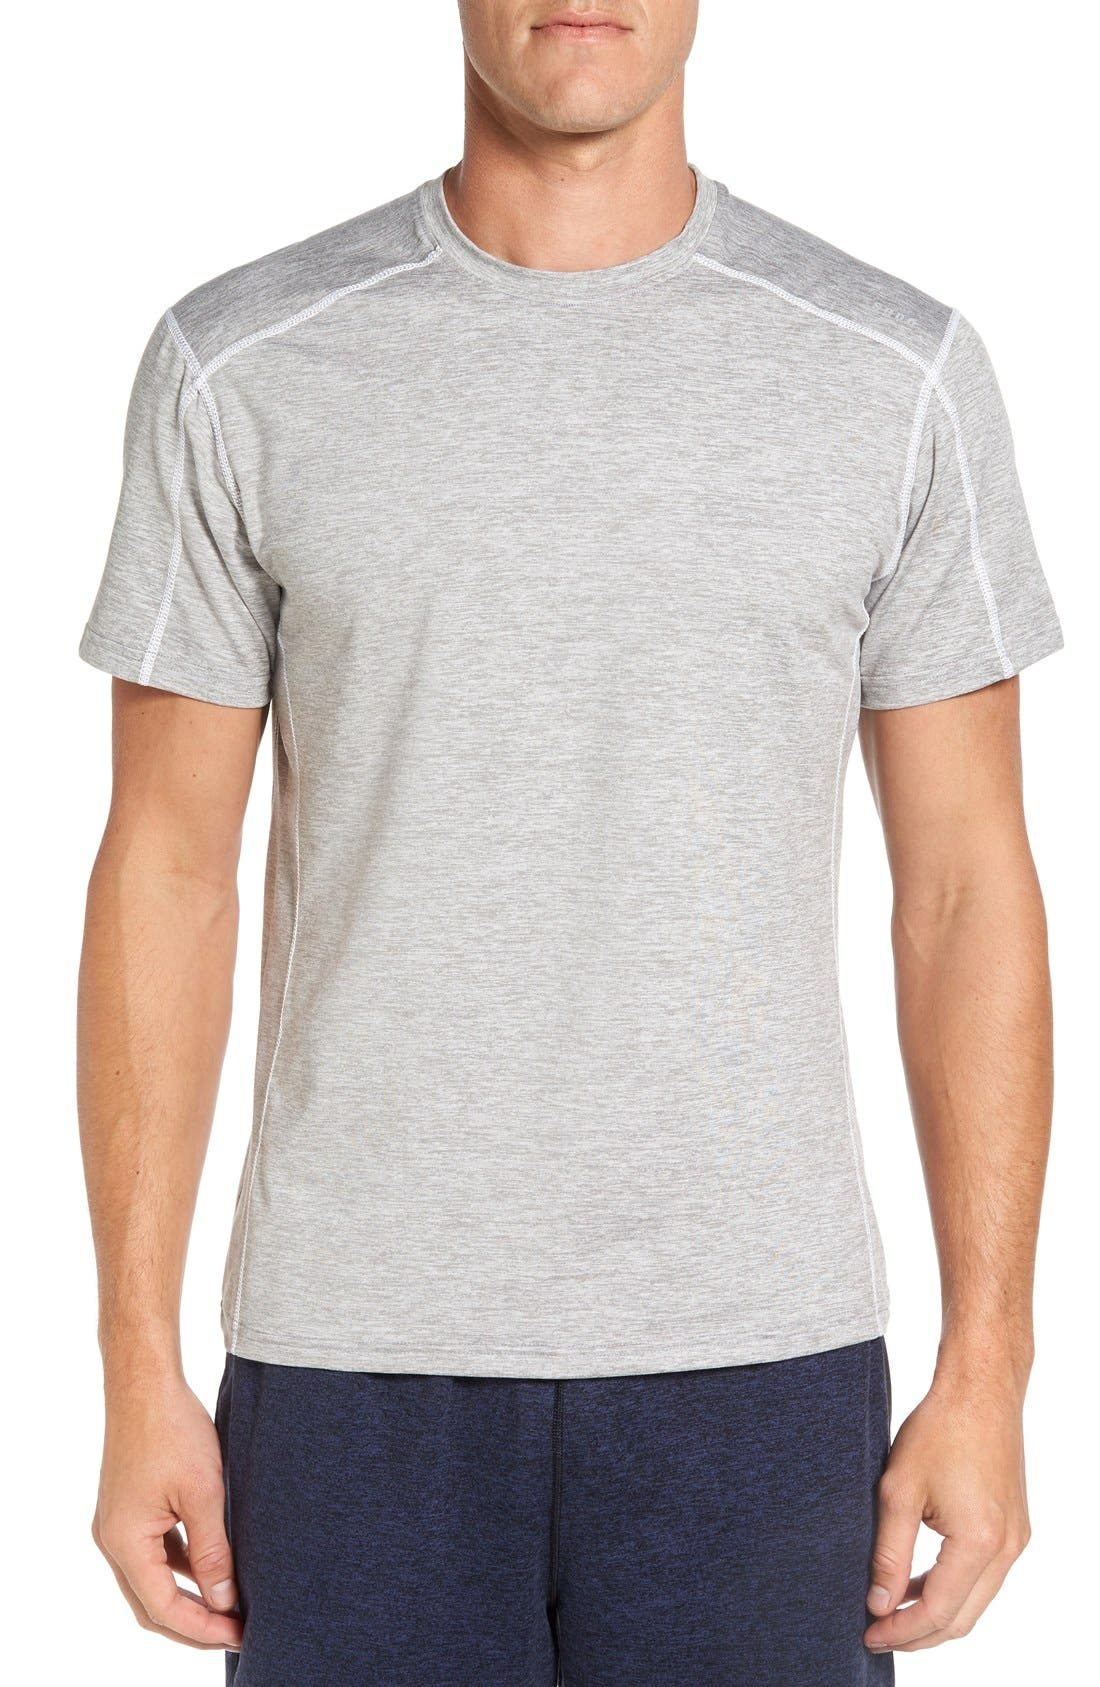 'Cooldown' Moisture Wicking Training T-Shirt,                         Main,                         color, Heather Cloud/ White